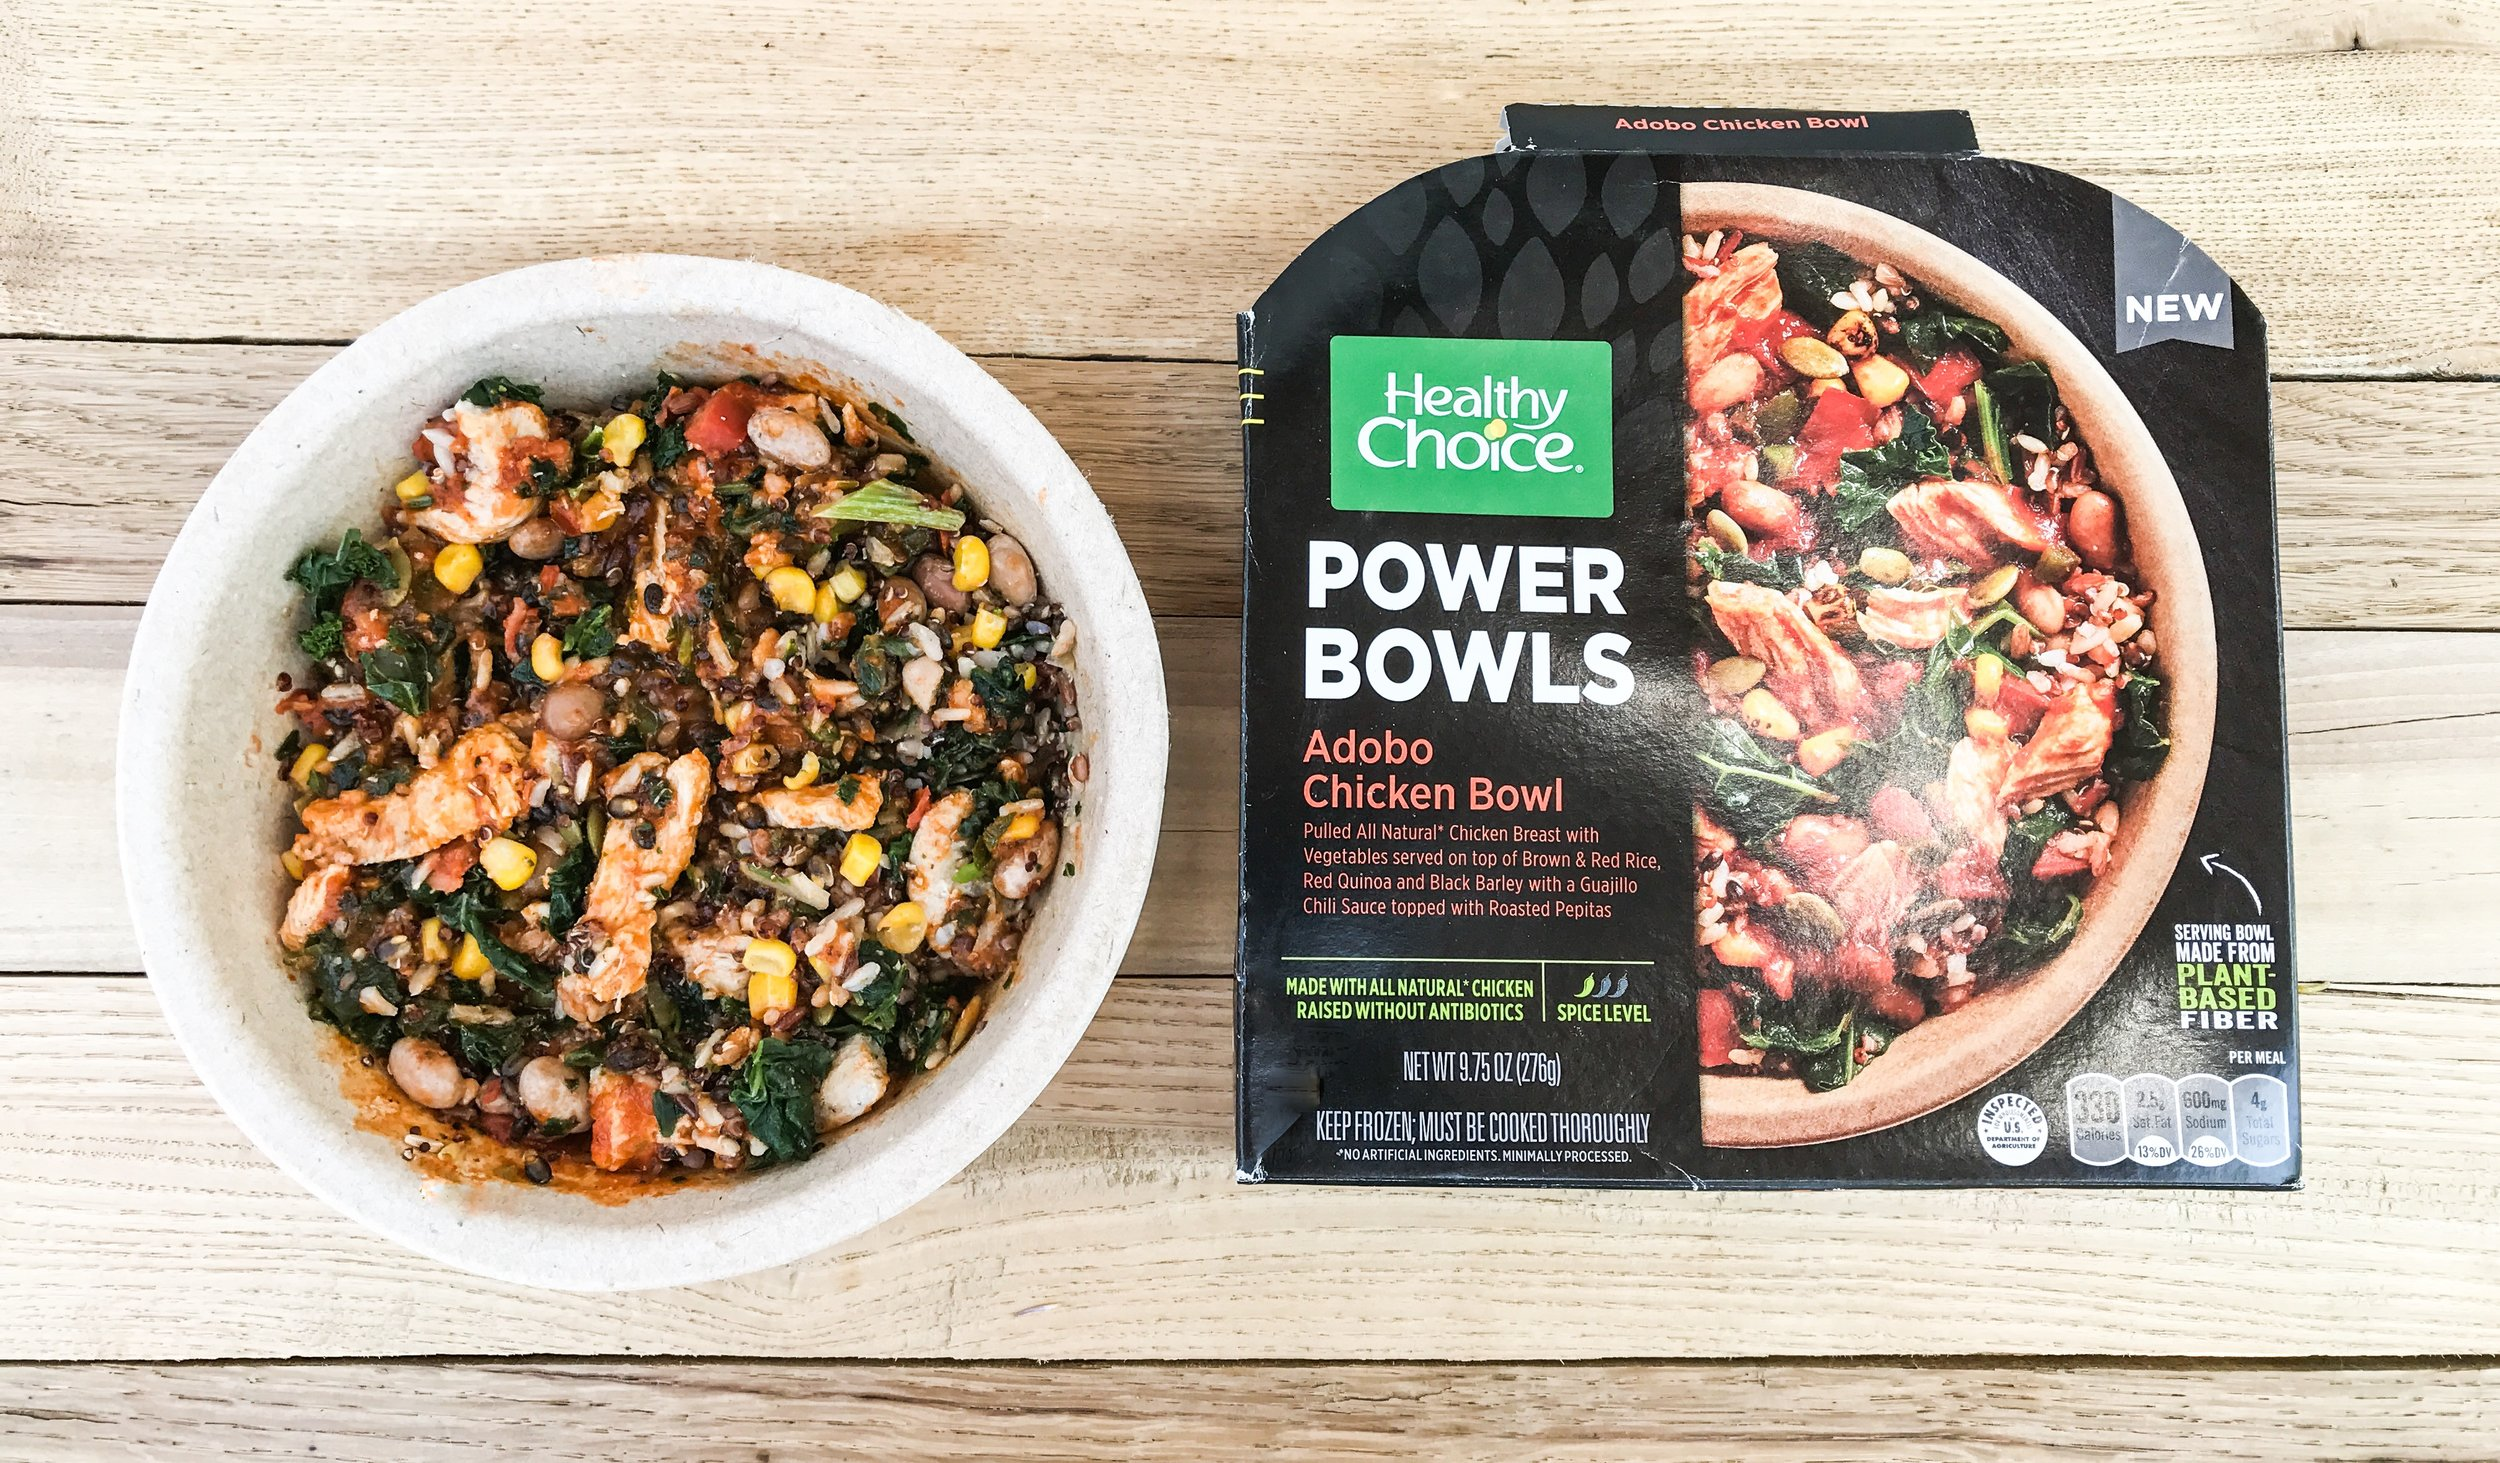 Adobo Chicken Bowl by Healthy Choice - whole grains, veggies, and lean chicken.